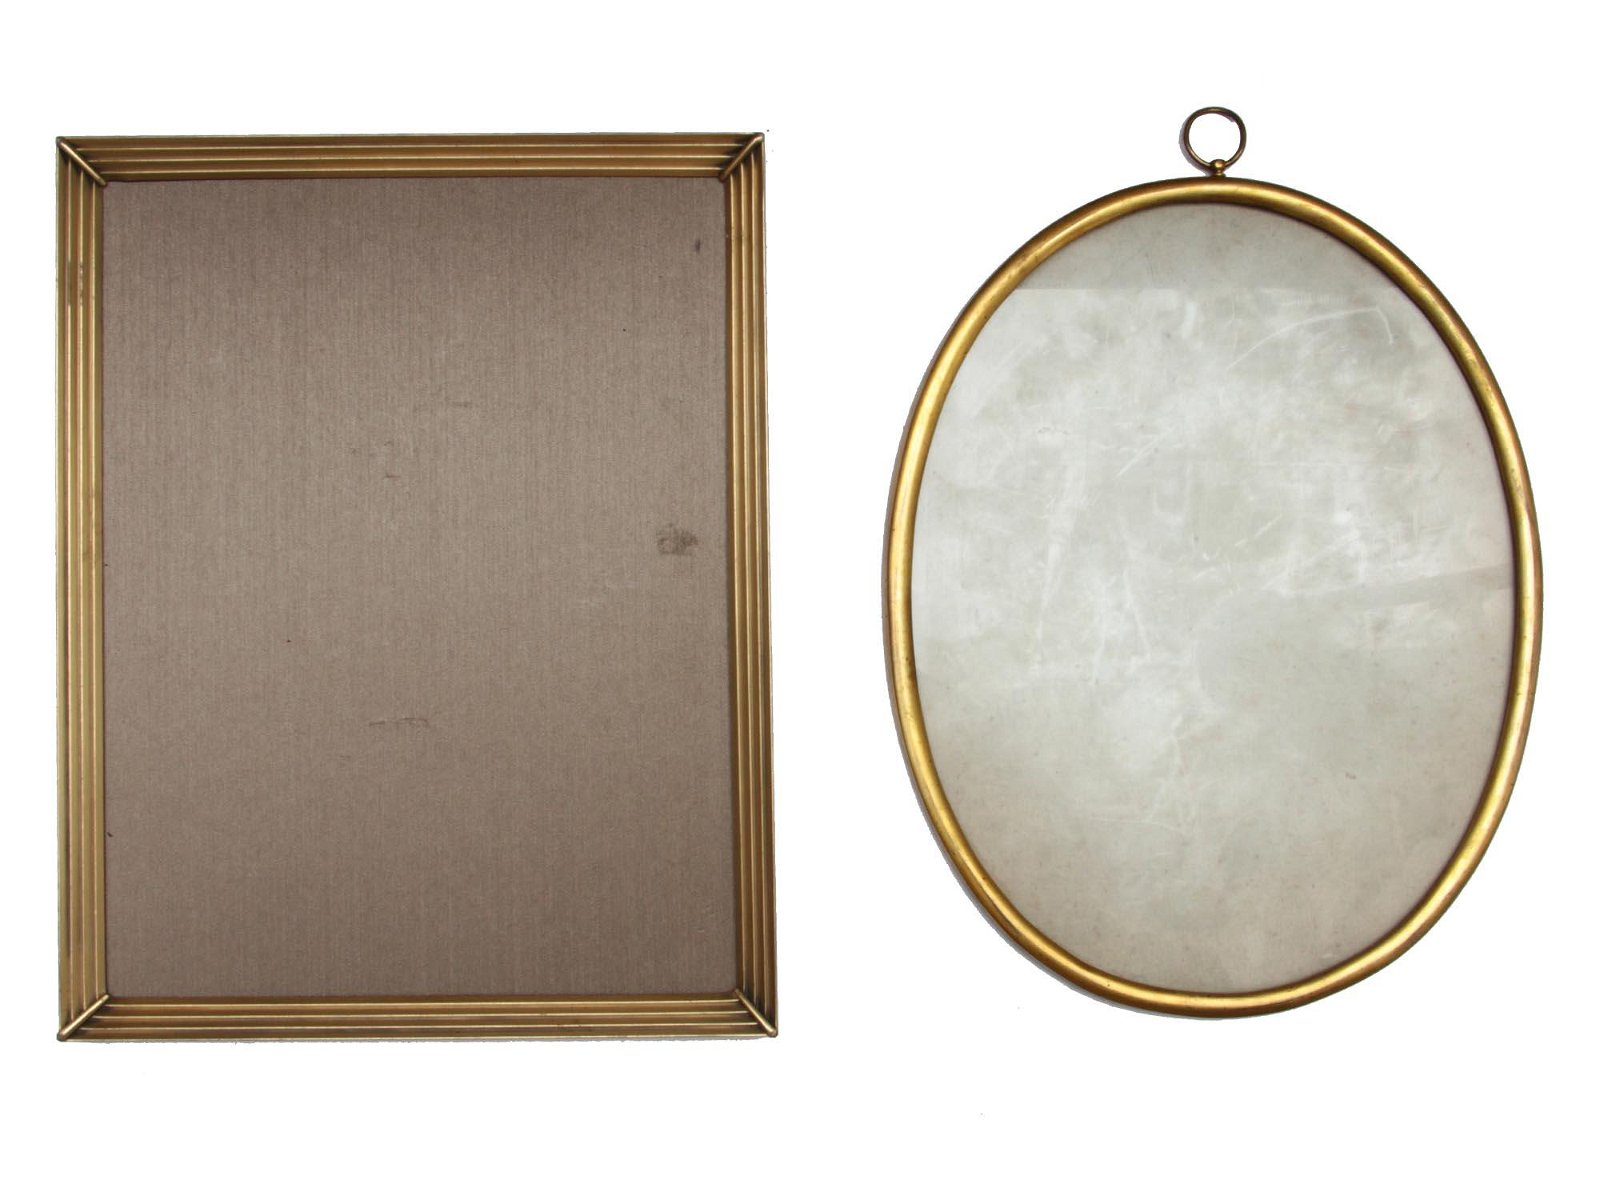 A PAIR OF VINTAGE BRASS PICTURE FRAMES CIRCA 1900